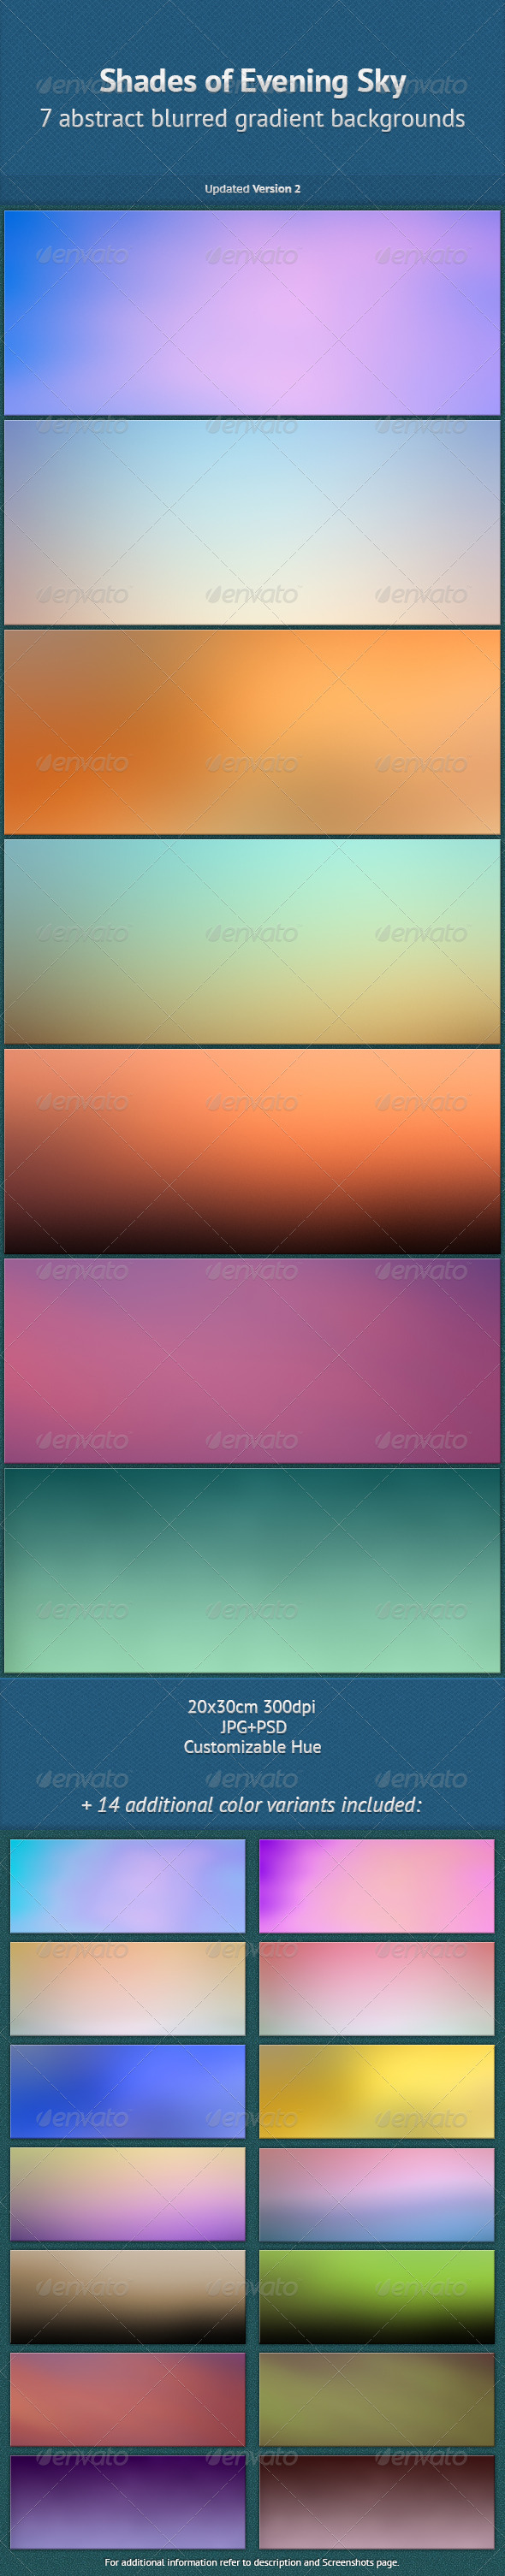 Shades of Evening Sky - Abstract Backgrounds